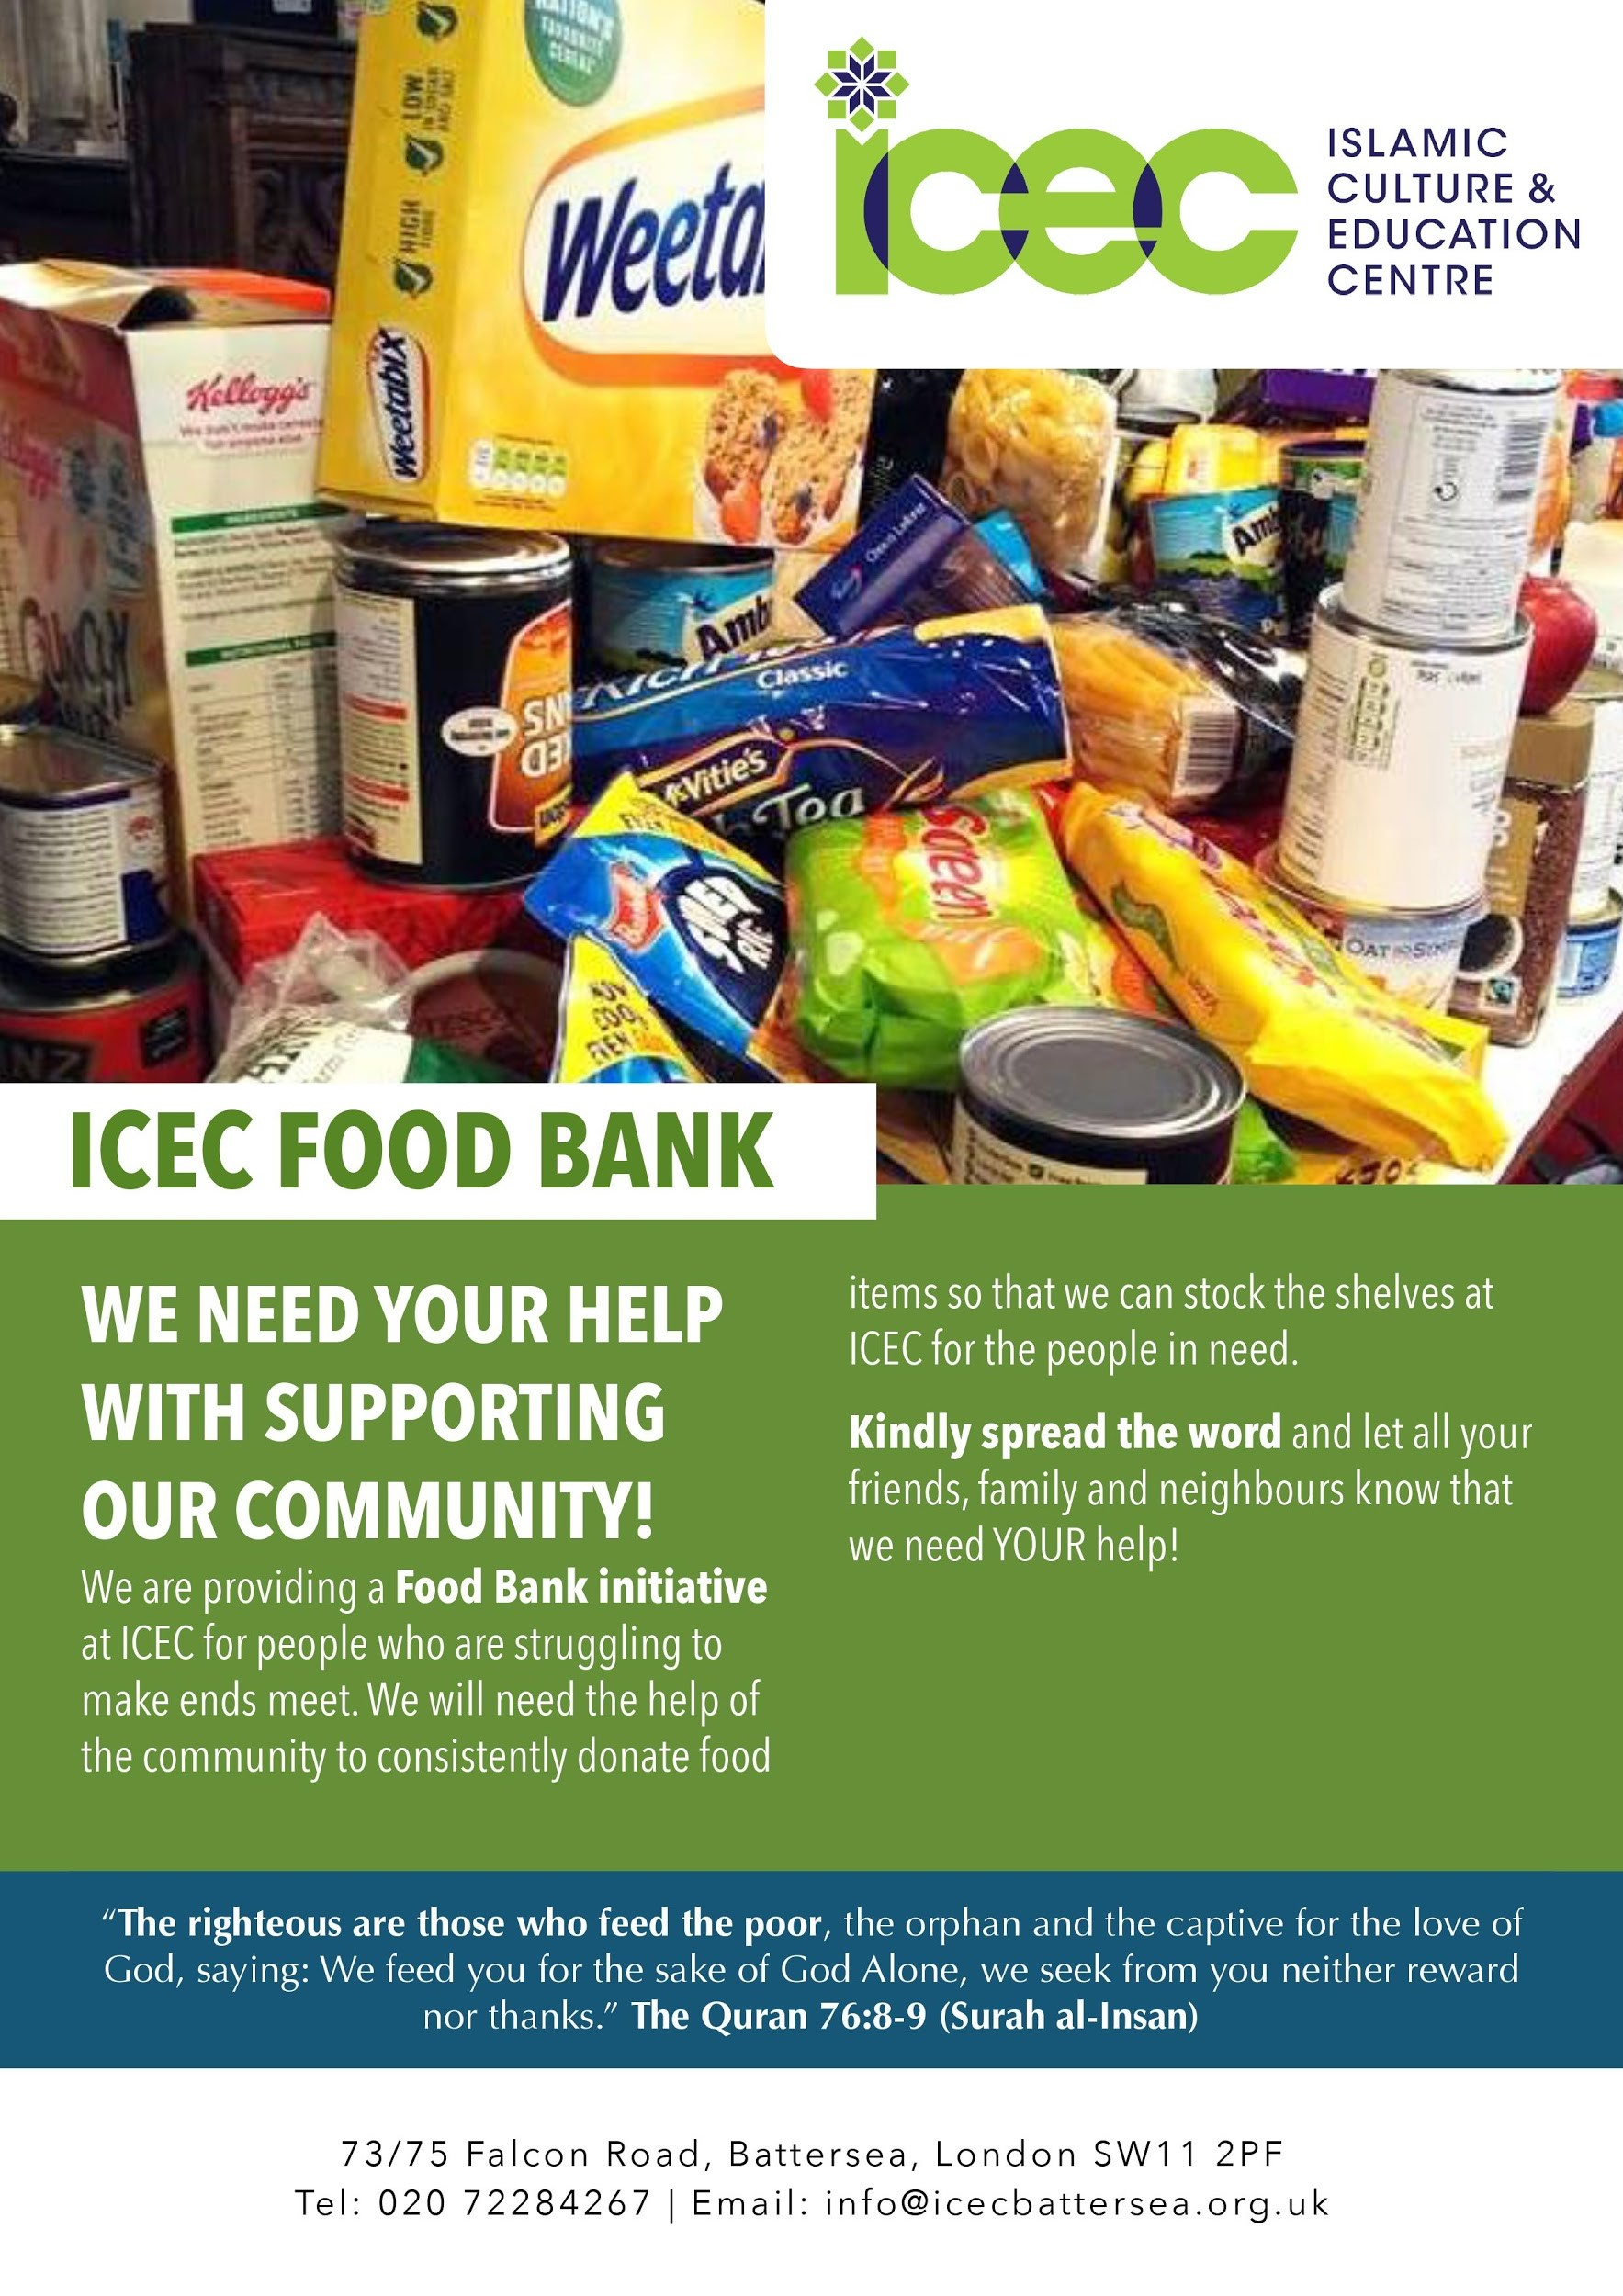 ICEC-FOOD-BANK